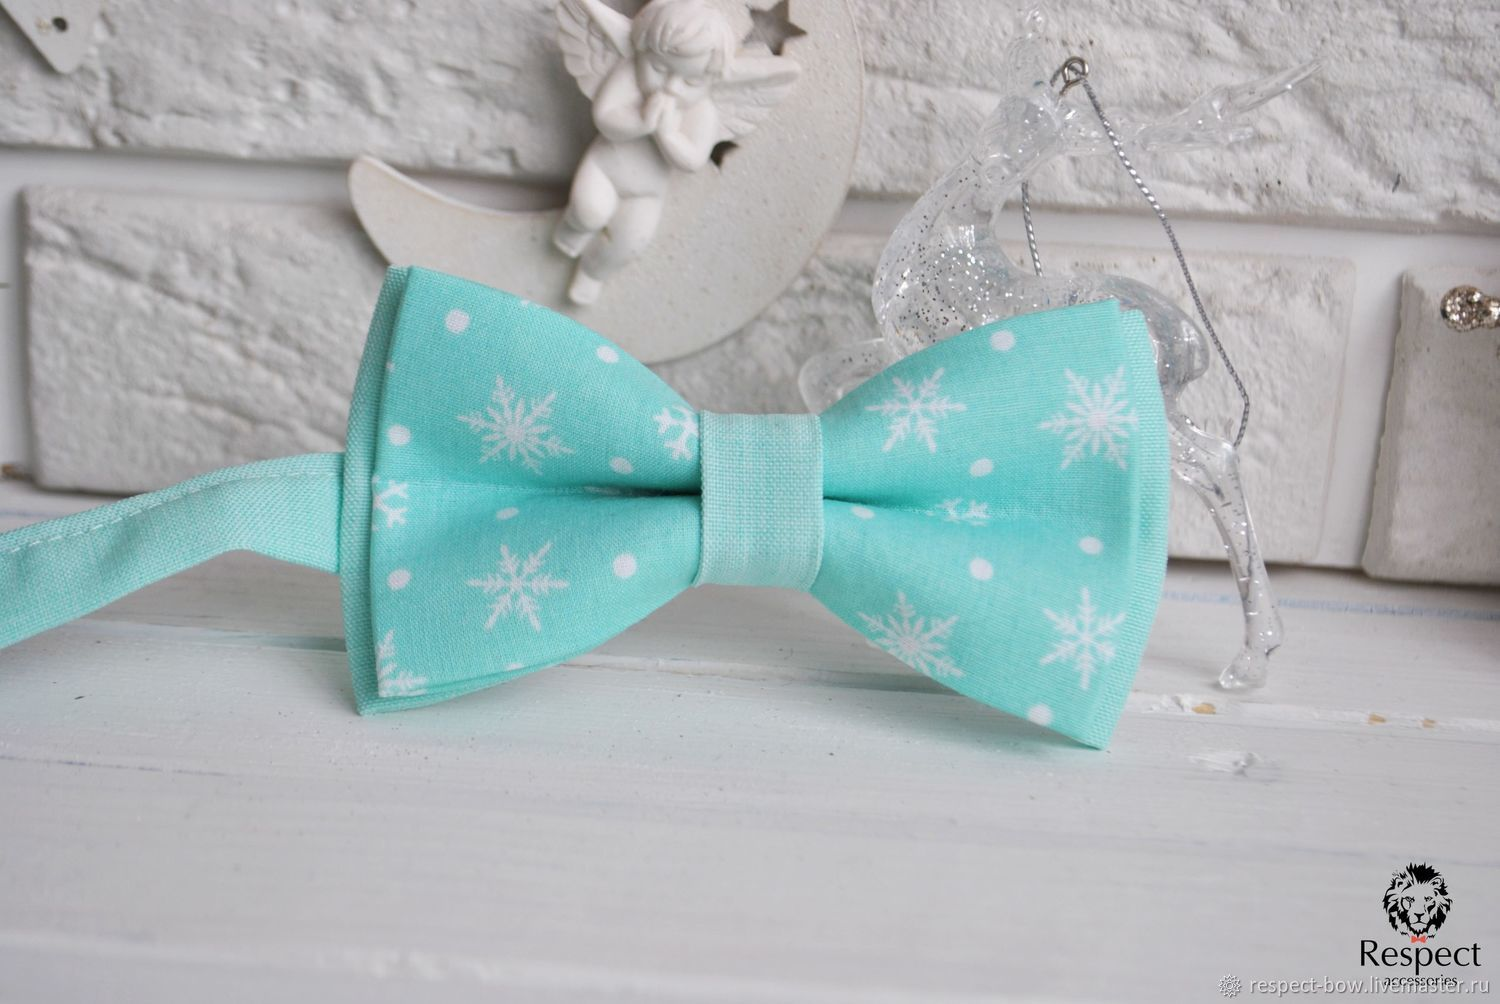 Mint bow tie for men, women or child you buy in the online store, with prompt delivery. Christmas bow tie to buy for Christmas gift for a friend or boyfriend